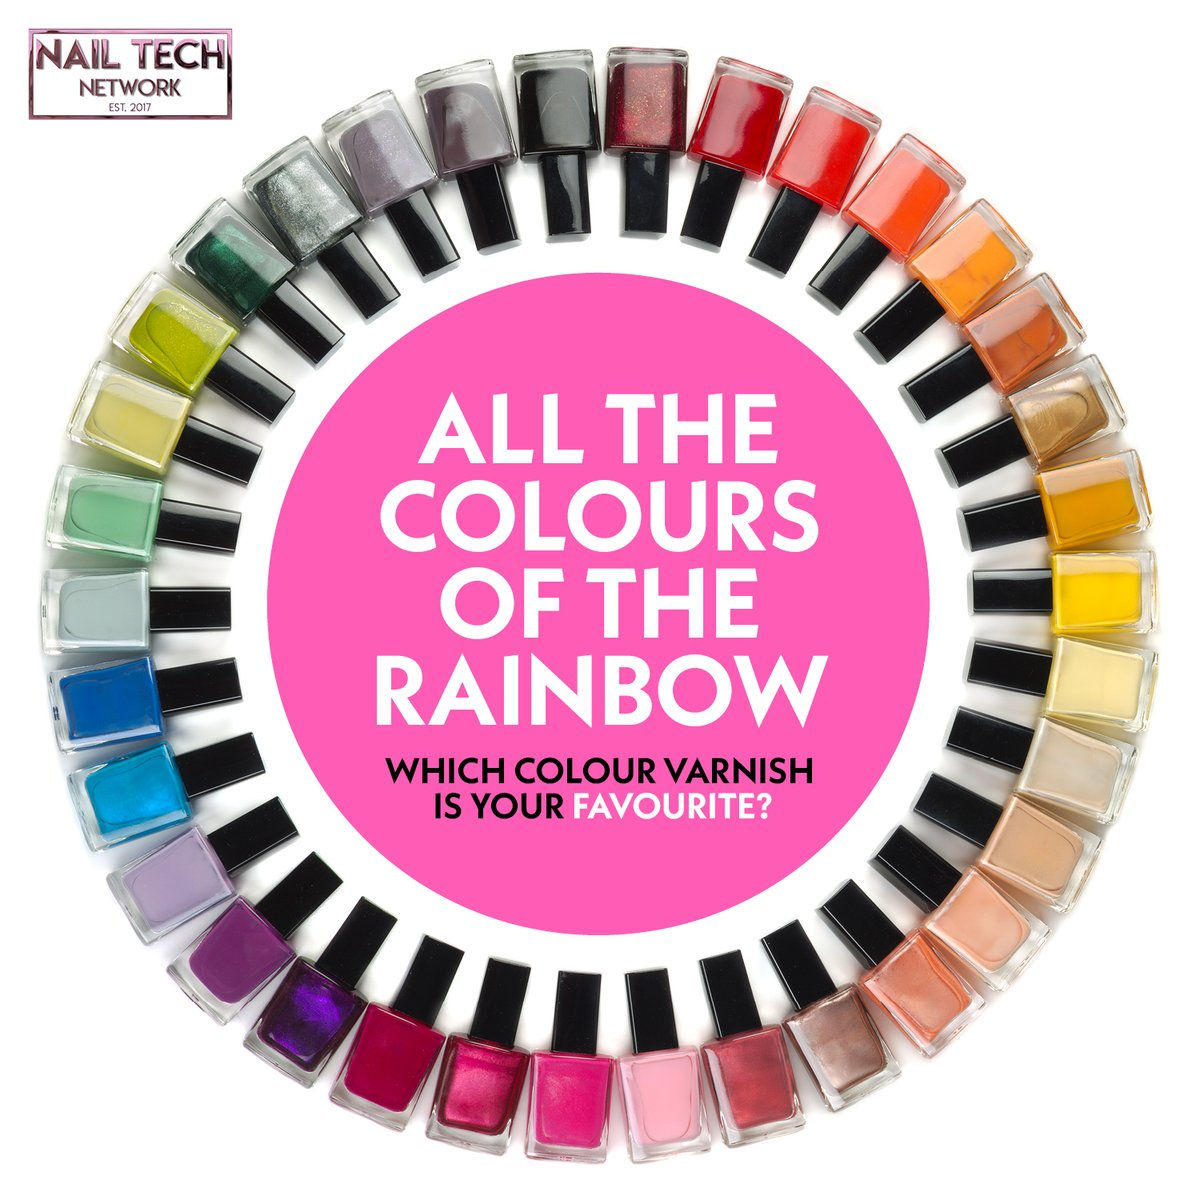 There are so many nail varnish options, it's hard to choose a favourite!   Do you have a favourite? Let us know in the comments!  #nailtechnician #nails #beauty #nailvarnish #nailart #nailartists #supportgroup #NTNFamilypic.twitter.com/dX4fOzceKR